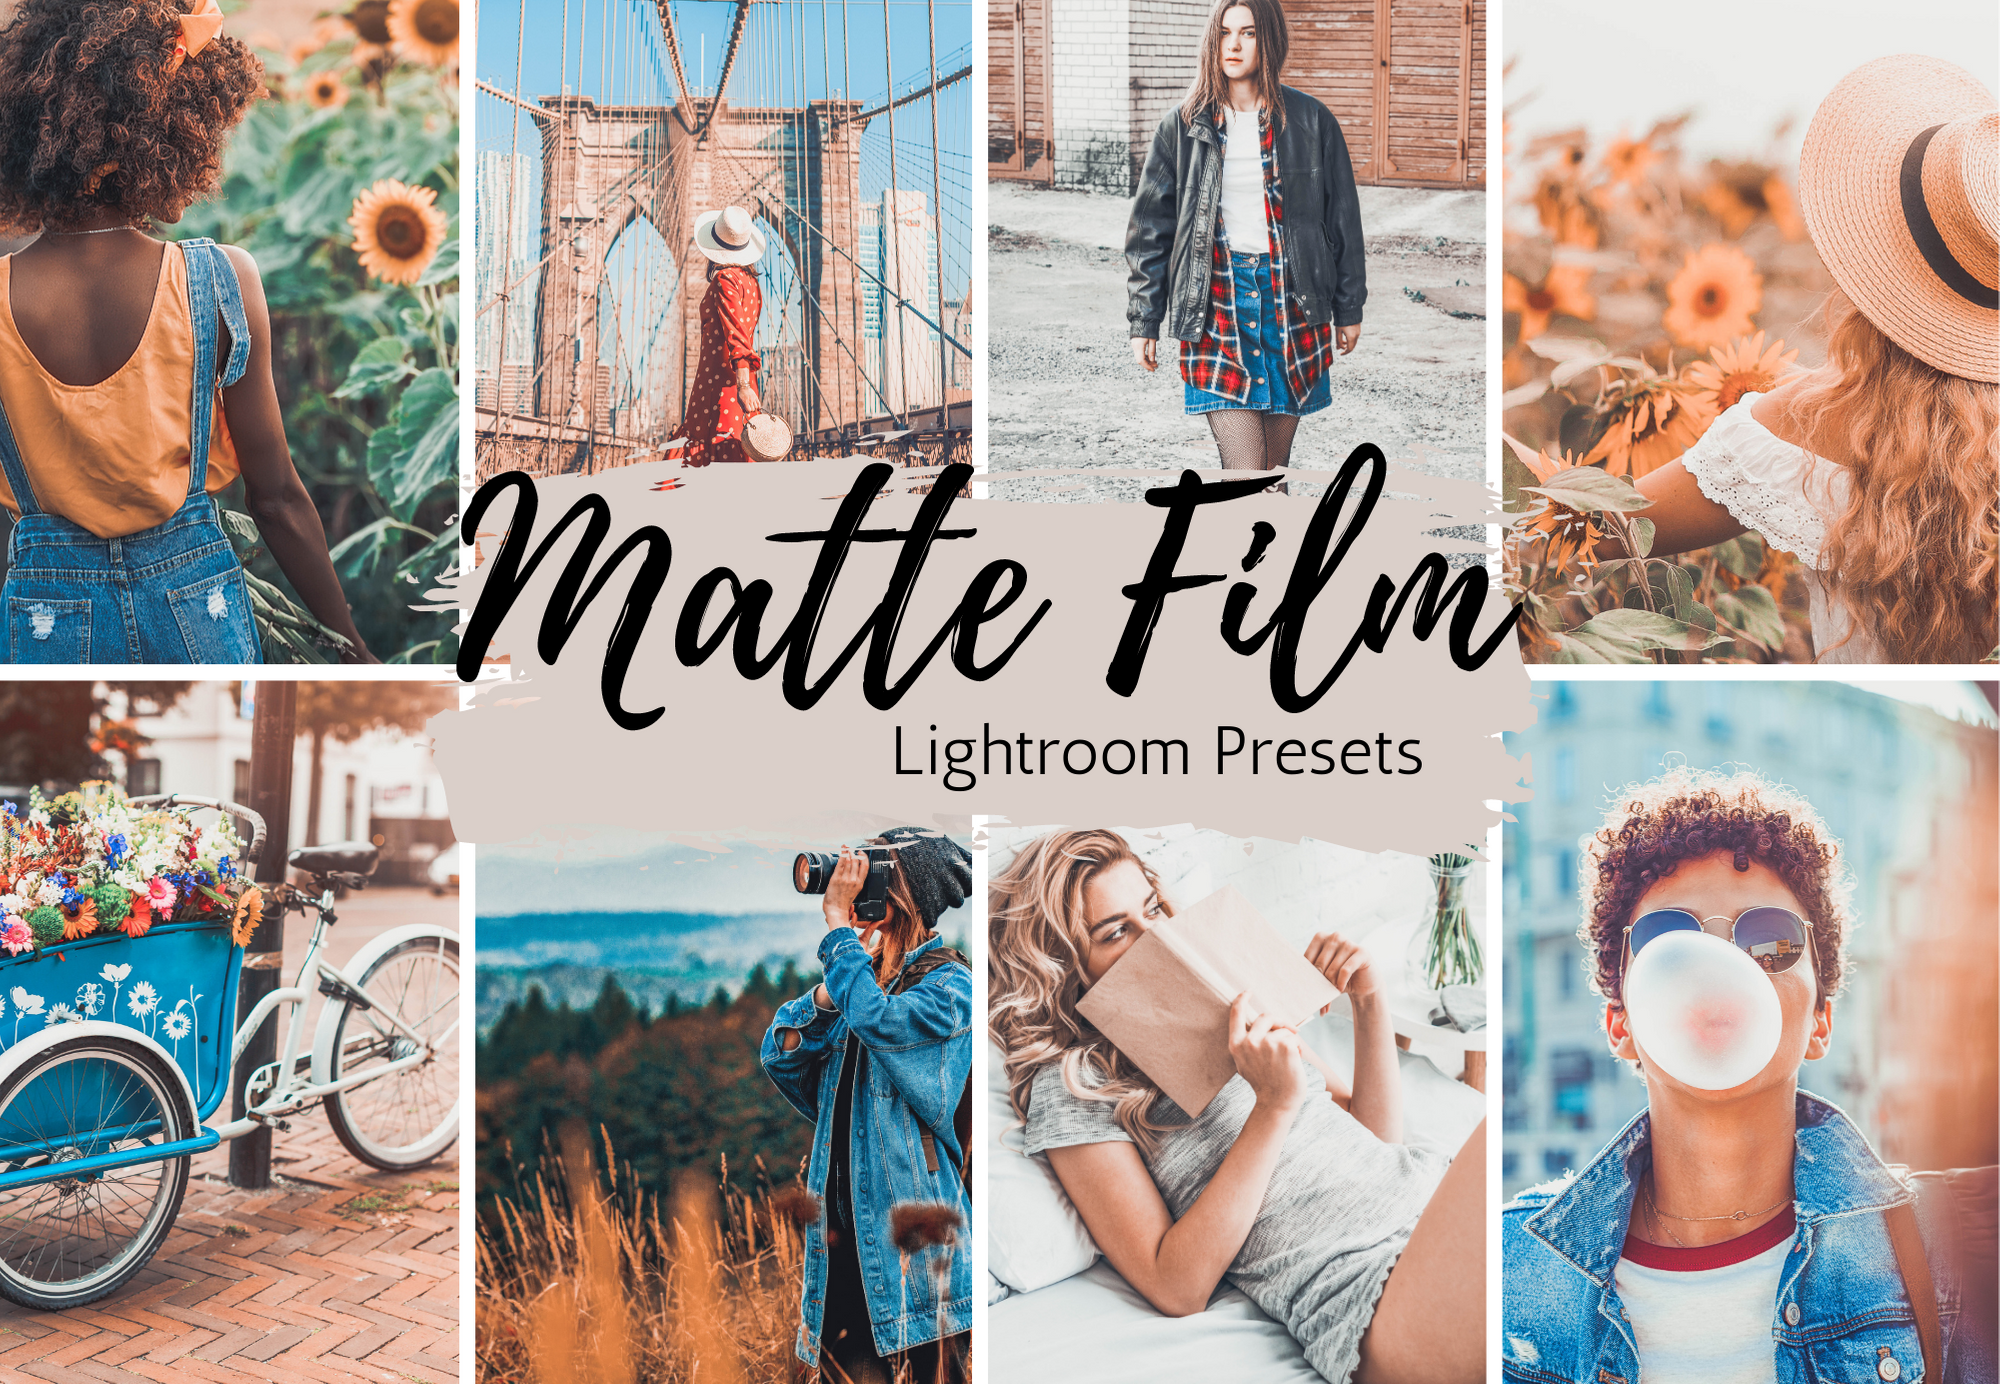 Matte Film 90s aesthetic 5 Lightroom Mobile Presets